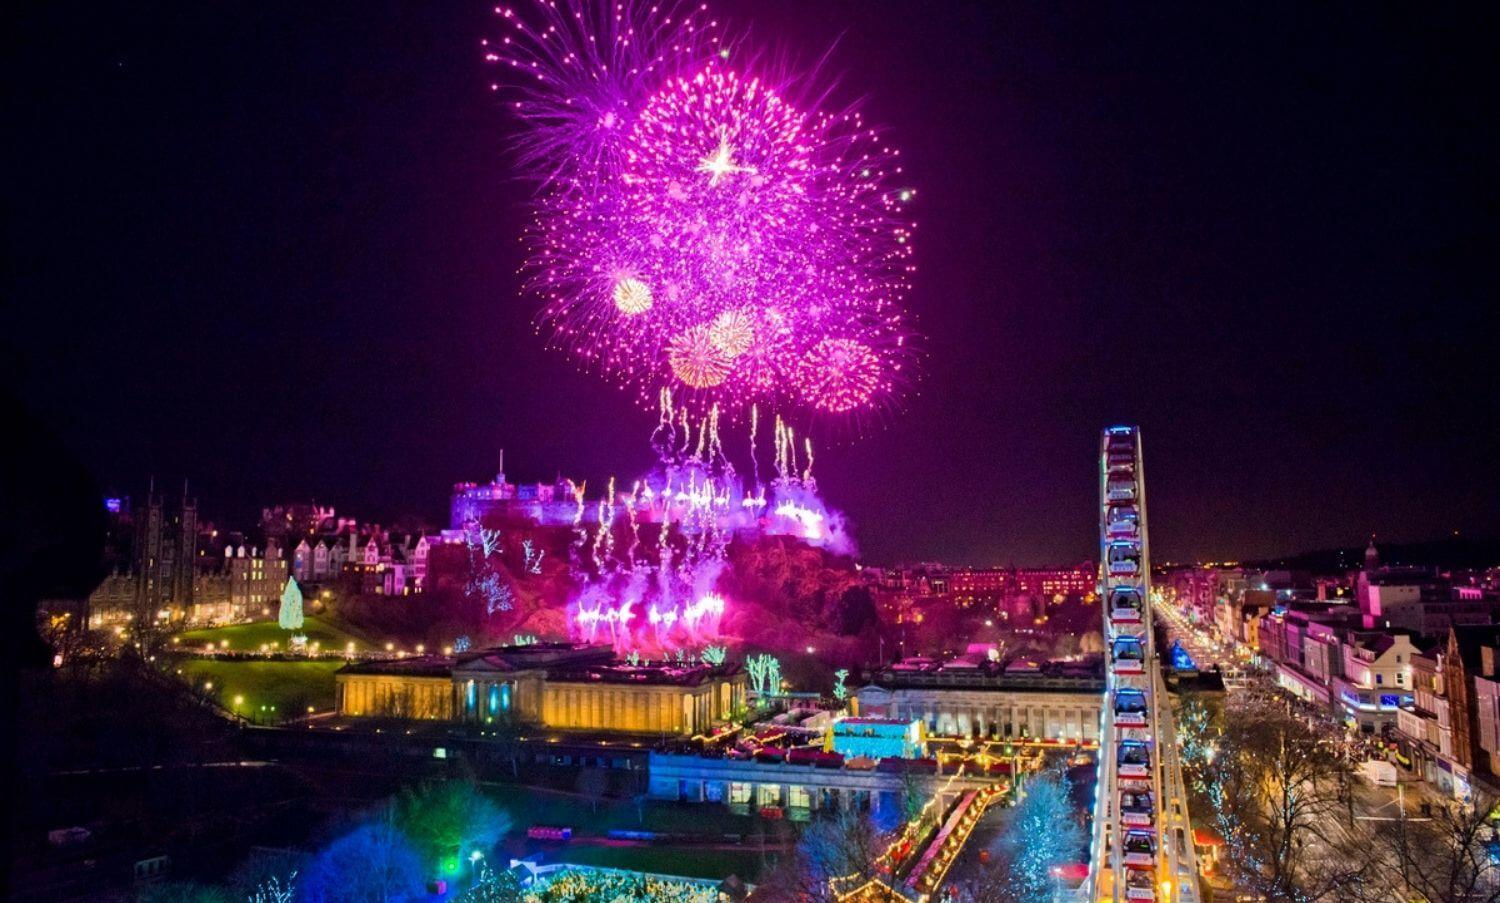 Hogmanay fireworks over Edinburgh Castle and the Big Wheel in Princes Street Gardens.